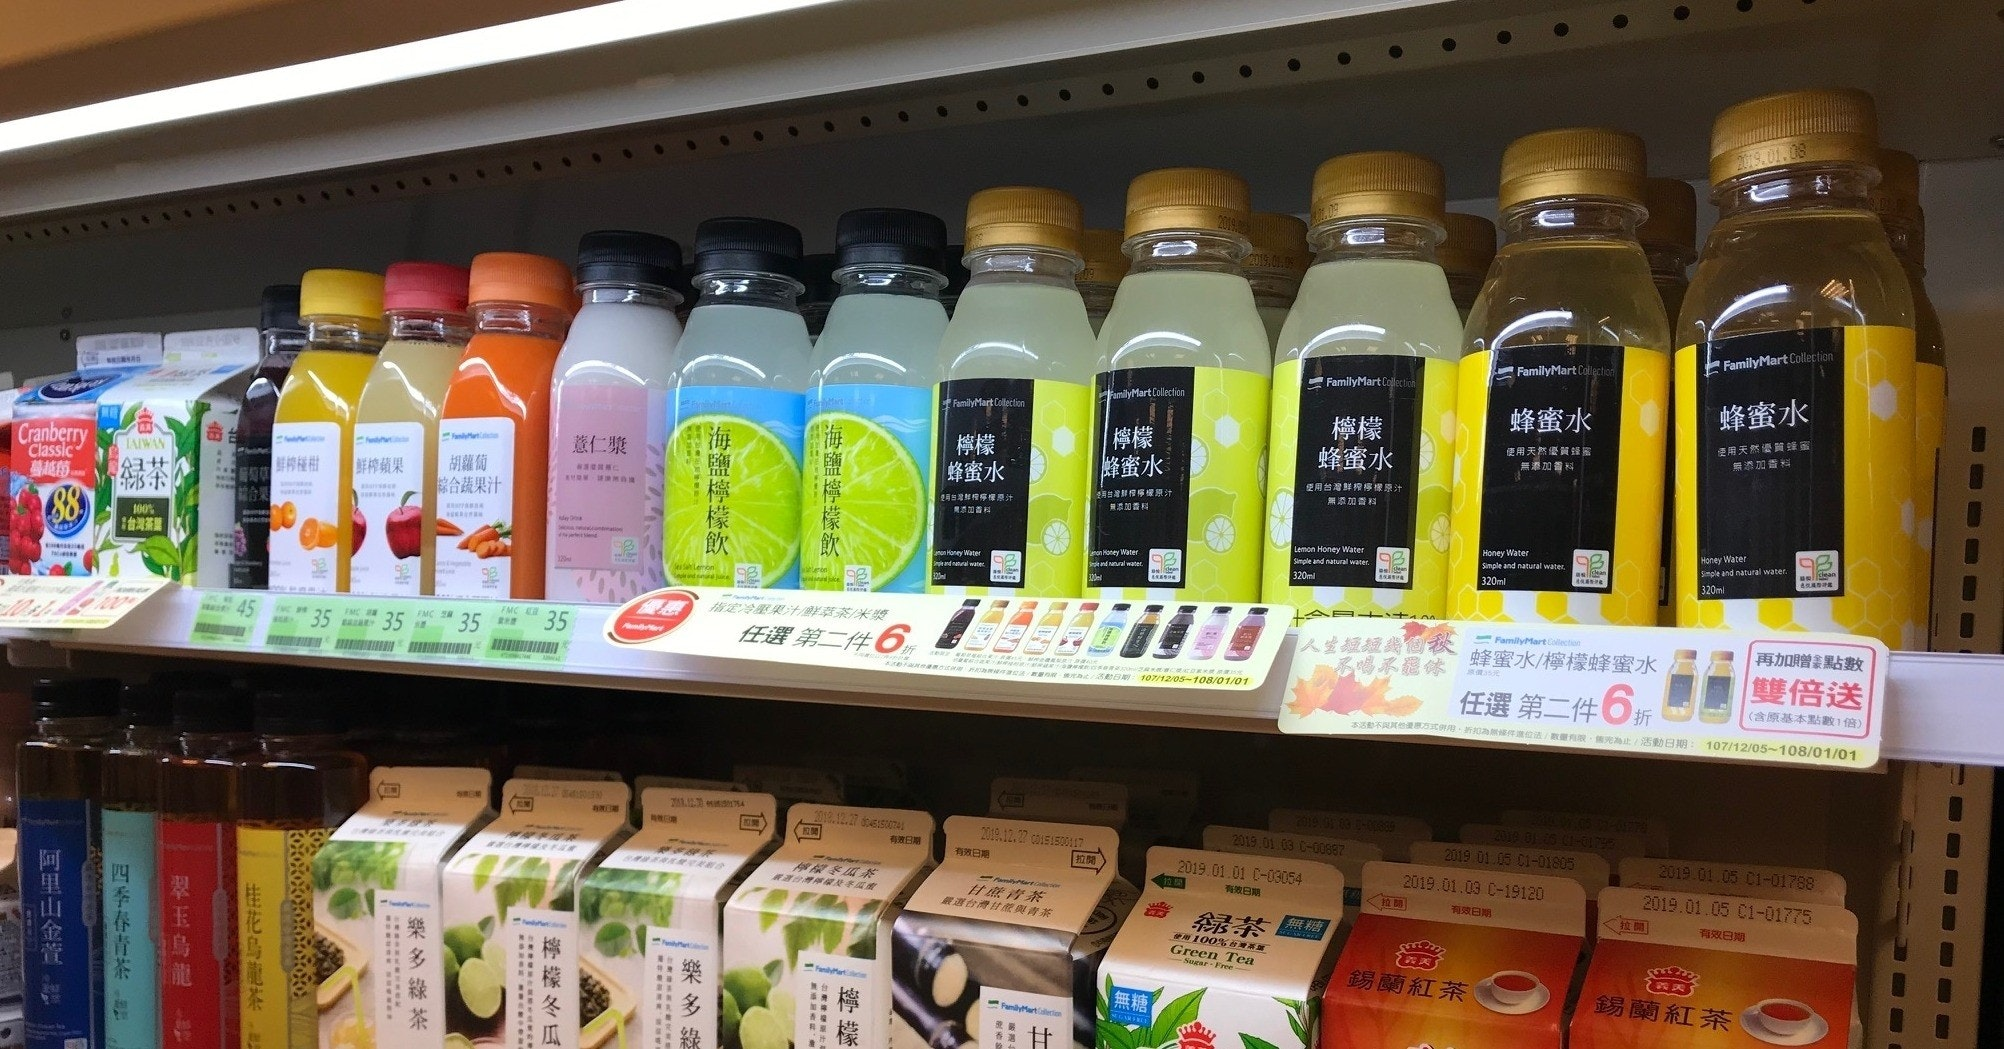 Liquor, Convenience Shop, Fizzy Drinks, Drink, Grocery store, Supermarket, Flavor, Food, Product, , supermarket, product, supermarket, product, convenience food, retail, grocery store, drink, whole food, convenience store, distilled beverage